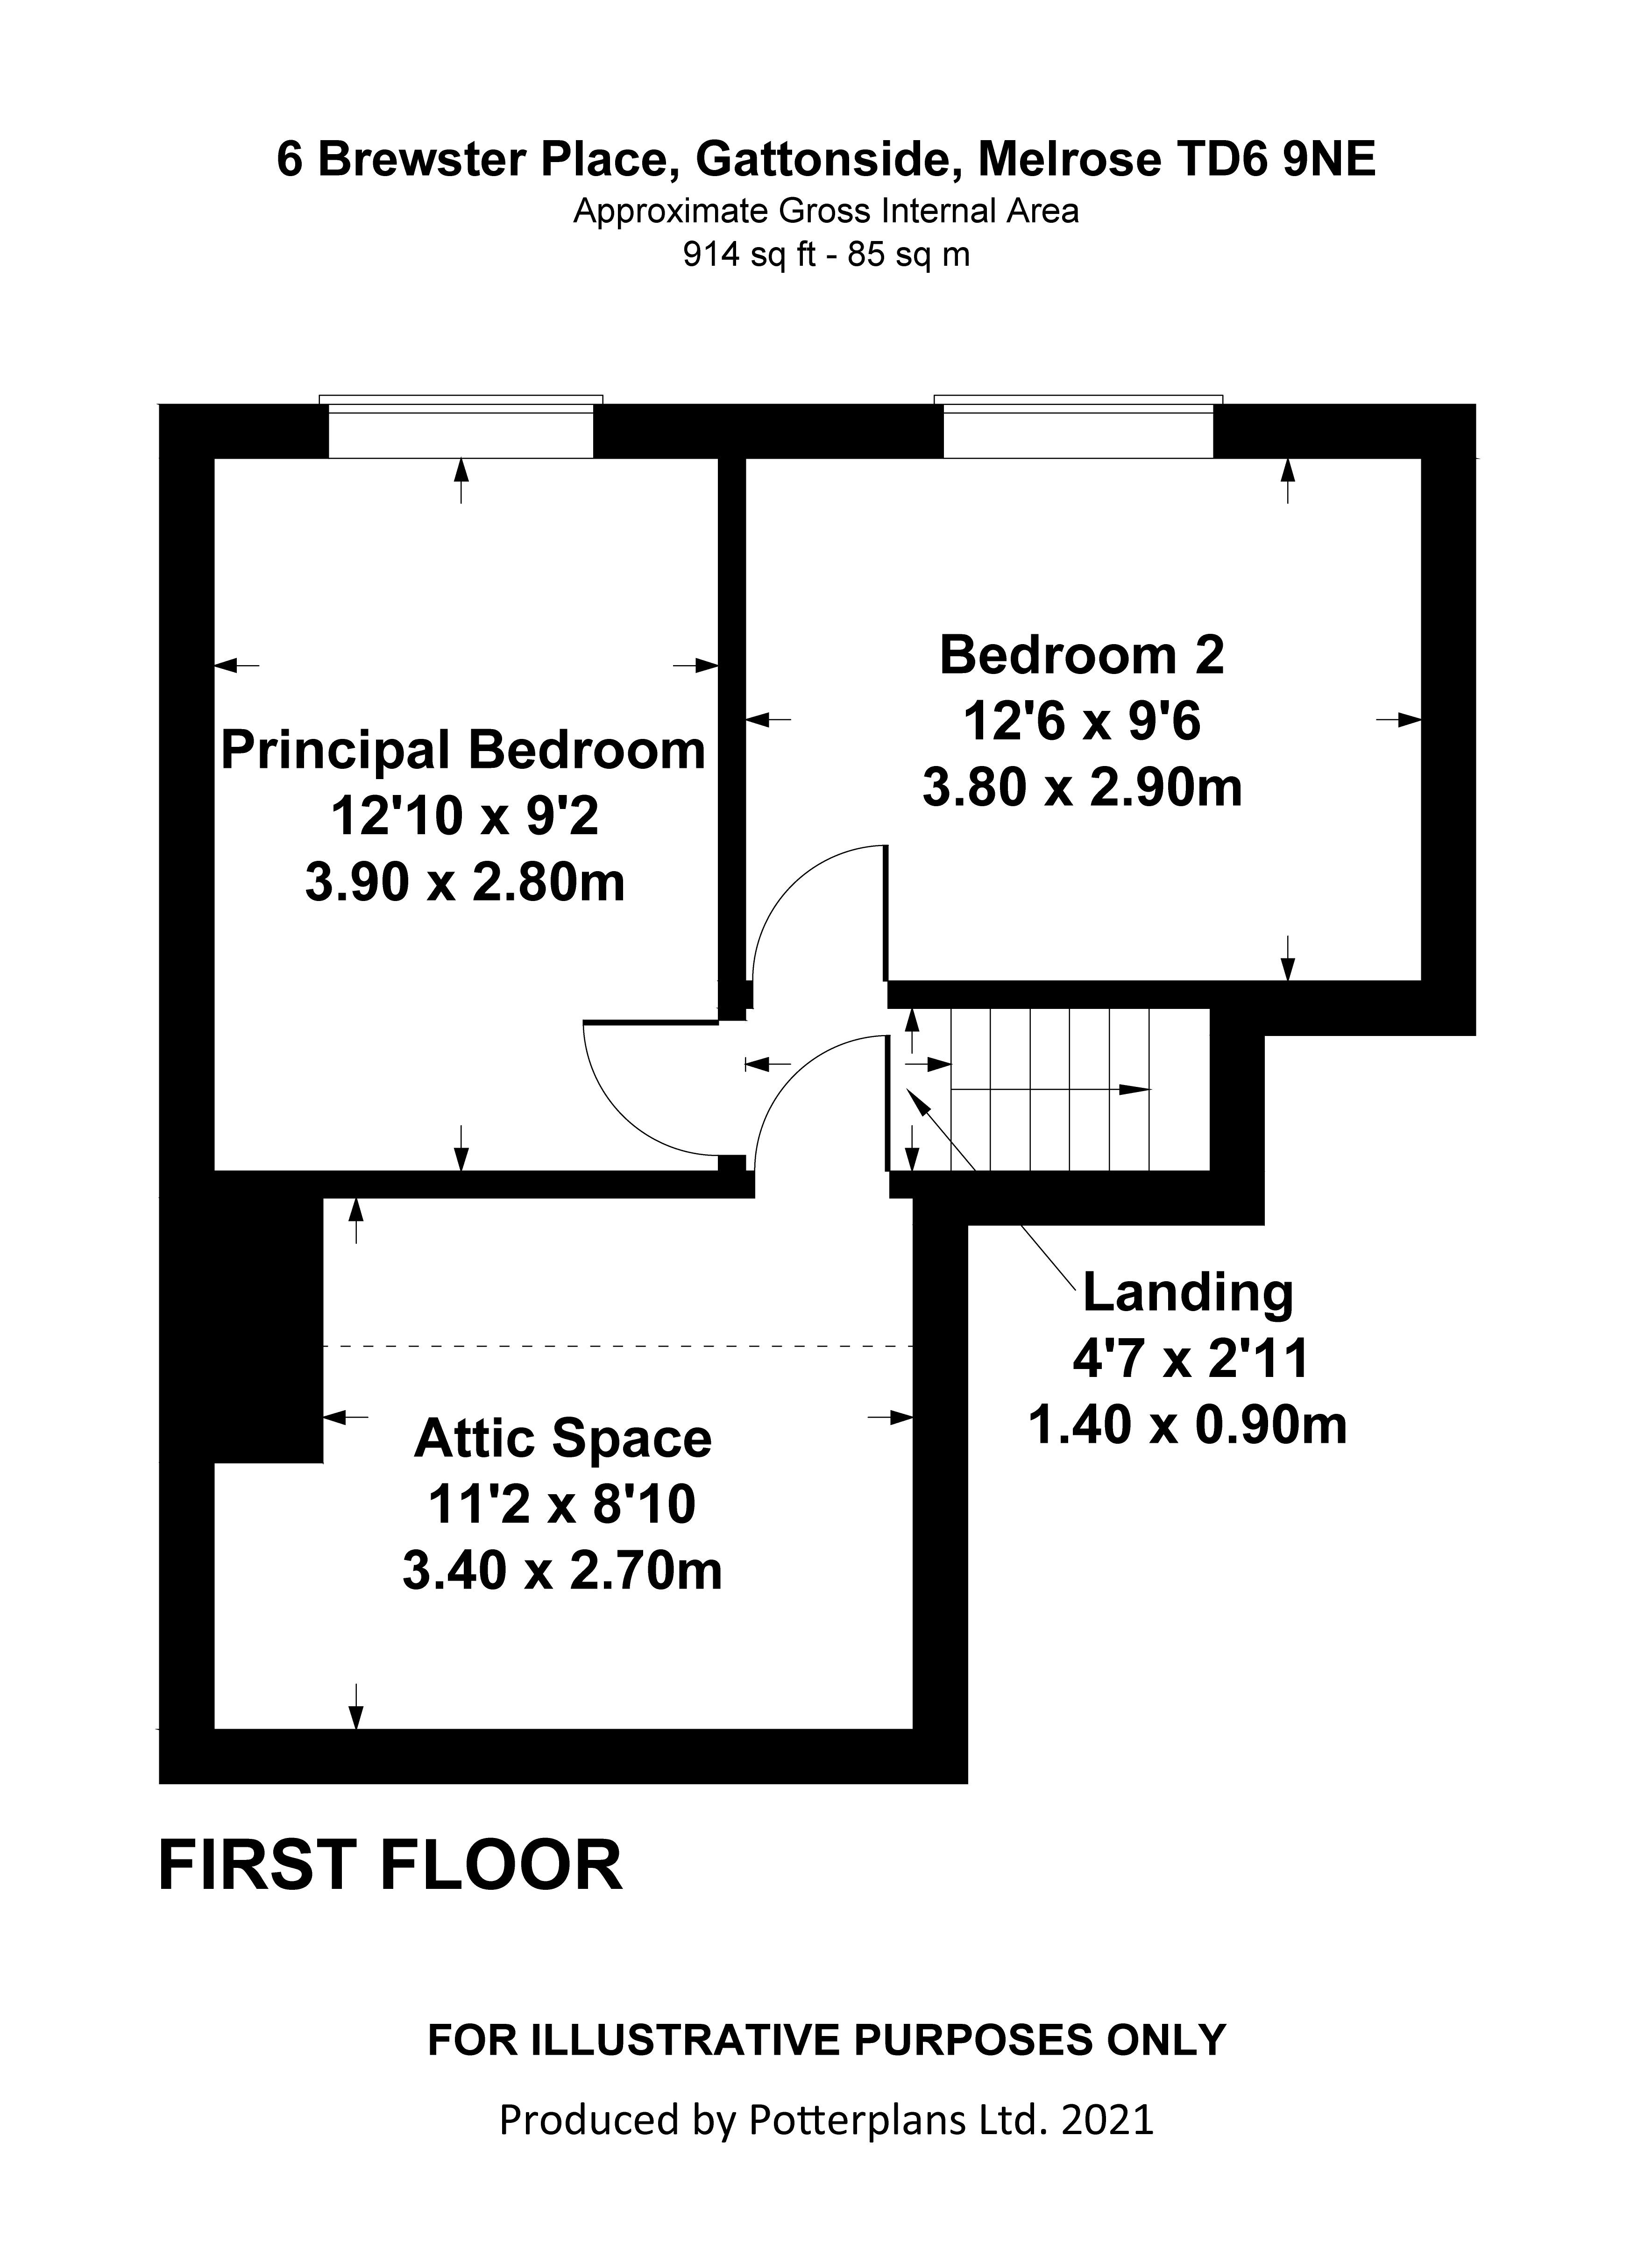 6 Brewster Place First Floor